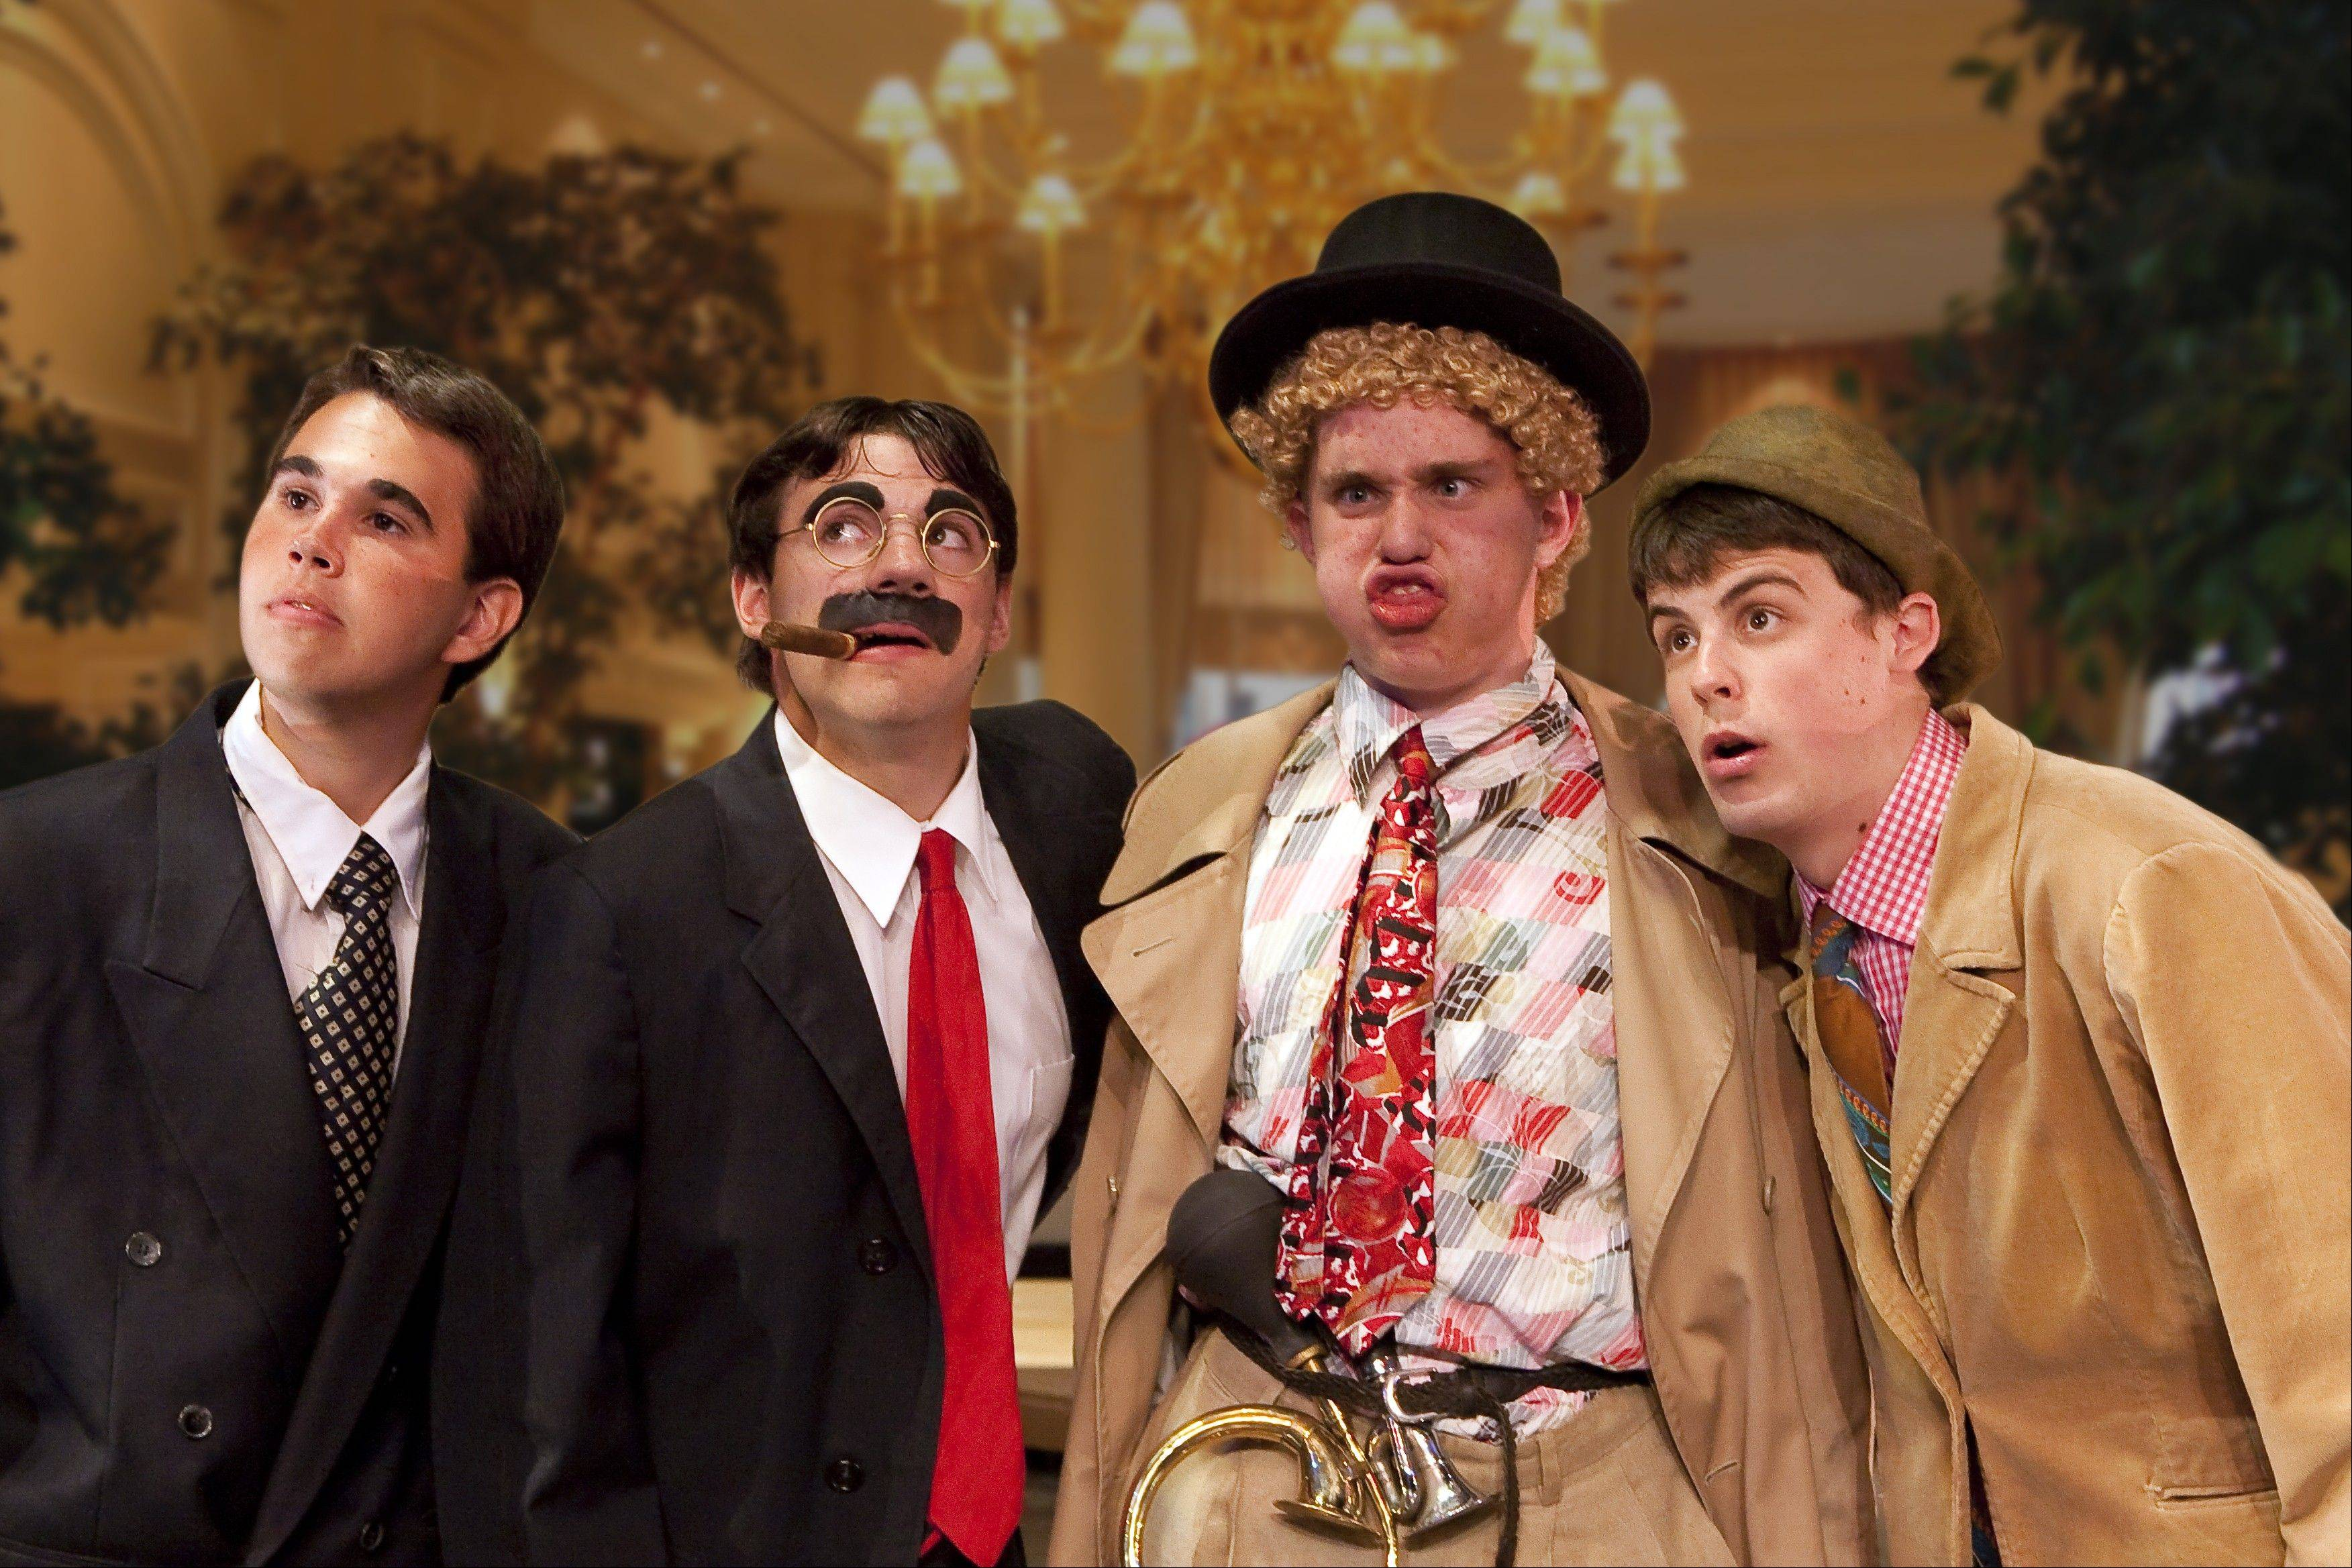 The four Marx Brothers are played by, from left, Jacob Storck, Jake Robertson, Jack Corkery and Carlos Kmet.